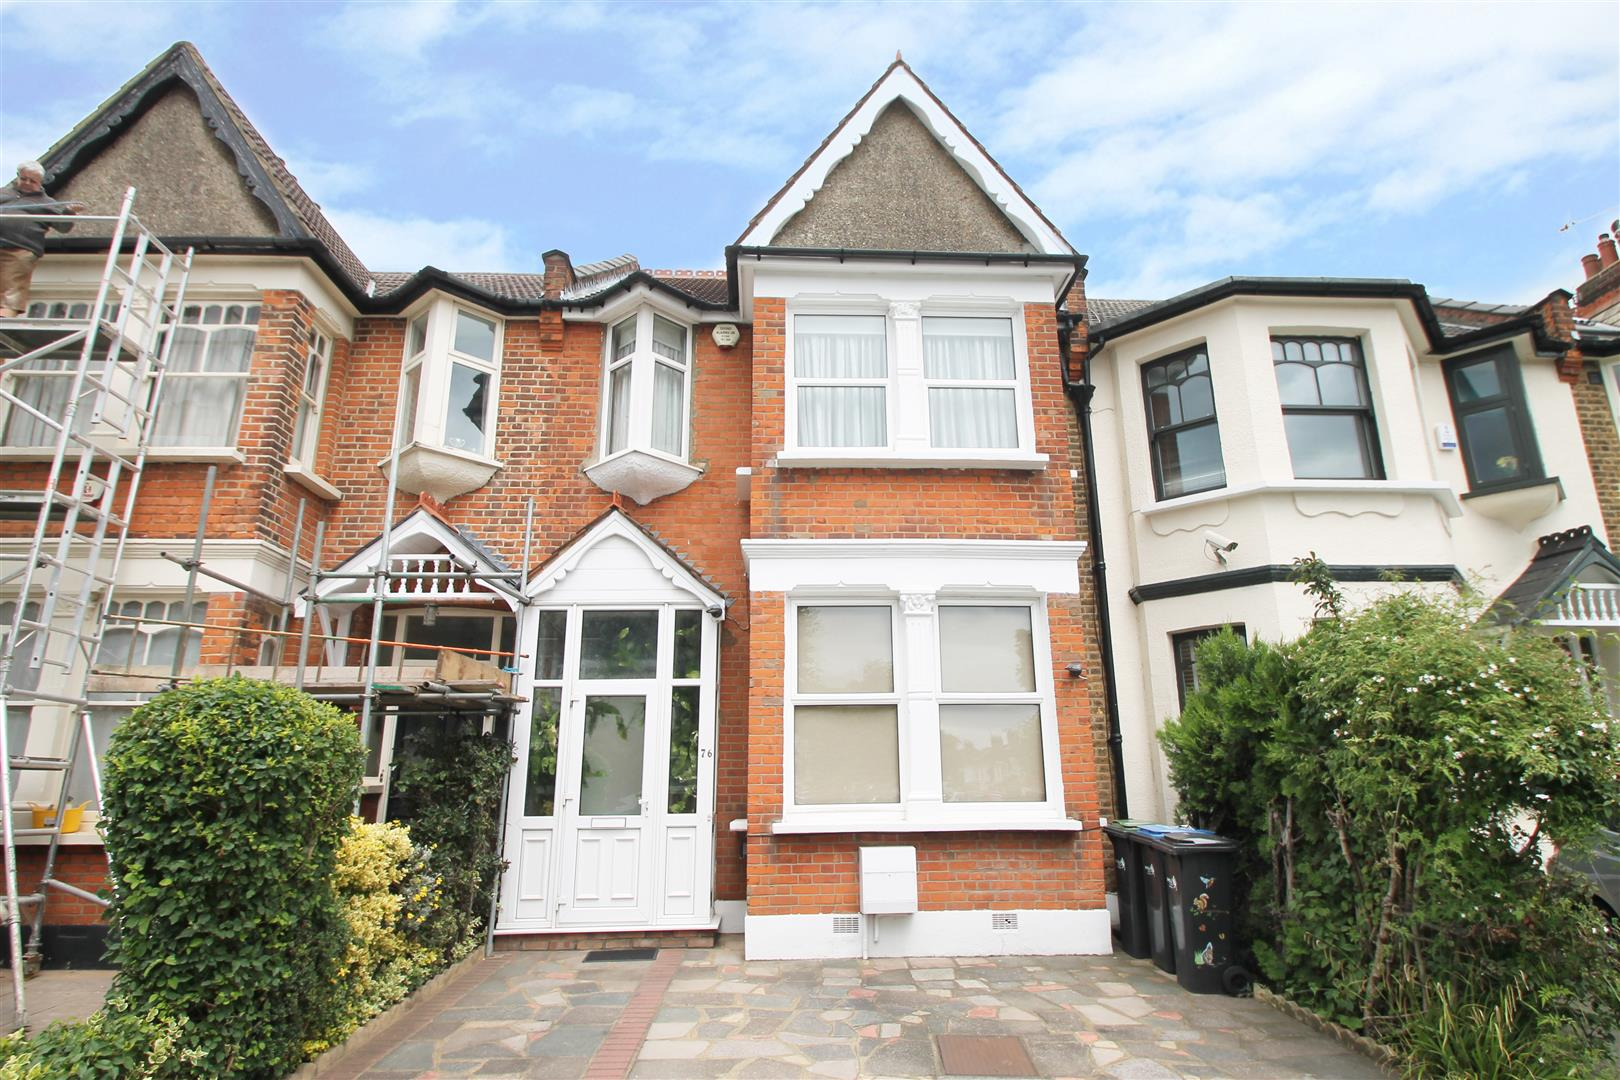 4 Bedrooms House for sale in Hazelwood Lane, London N13